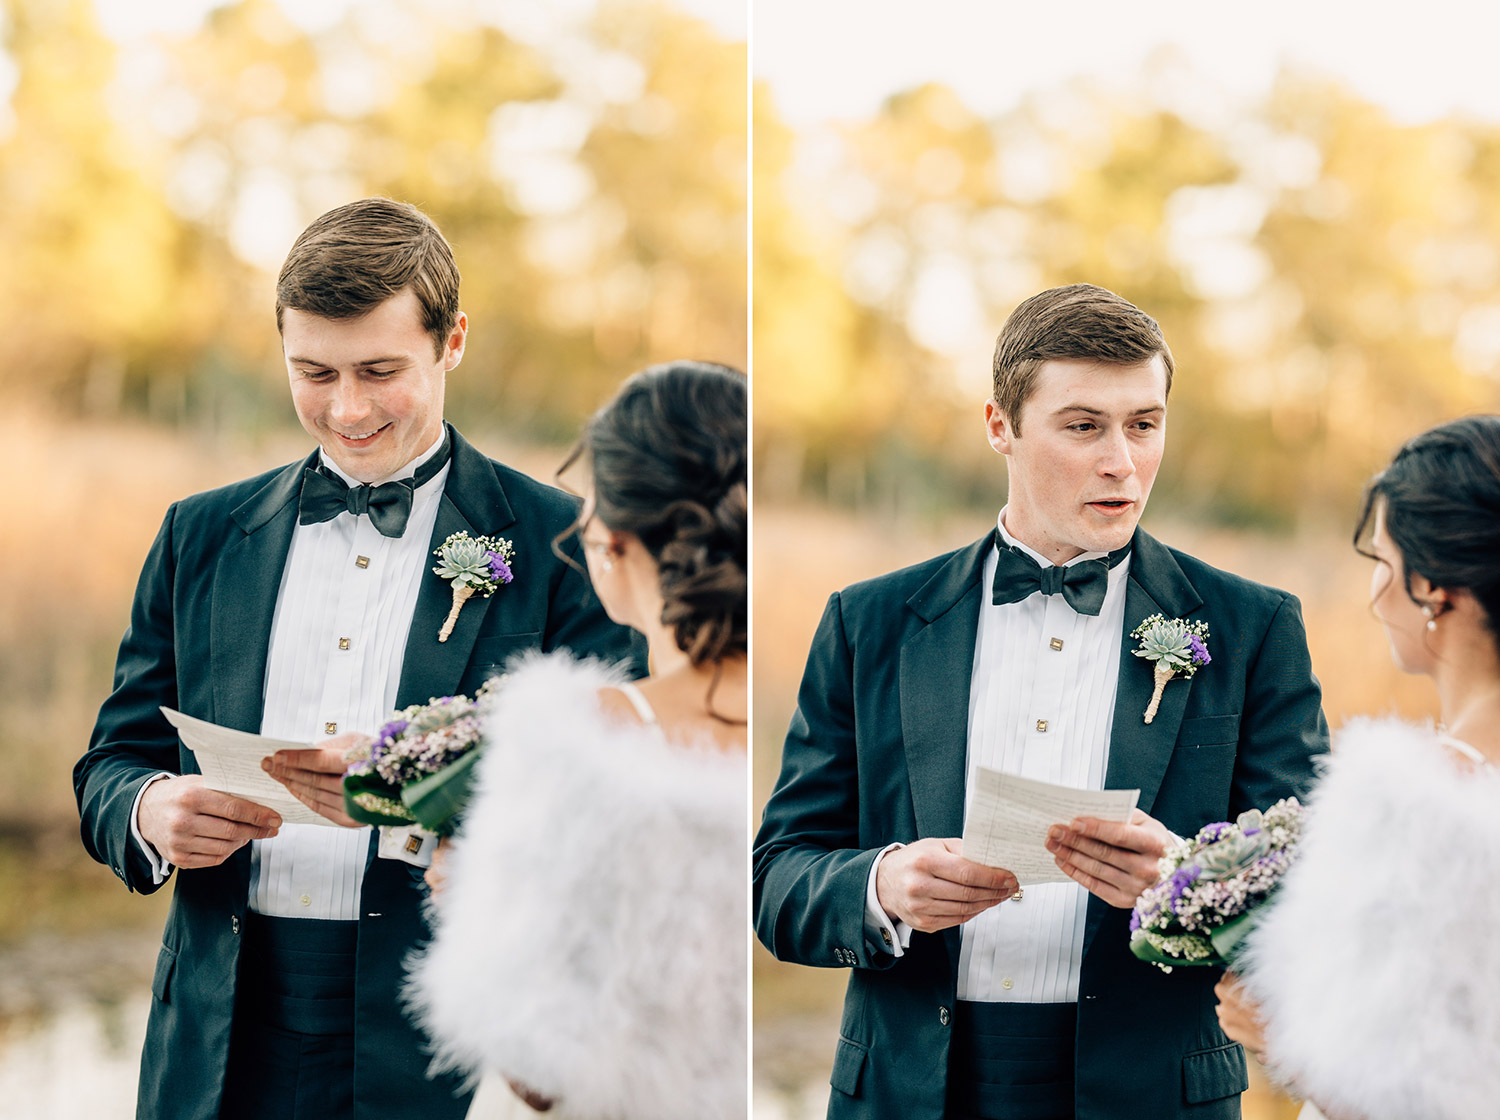 They each wrote their own vows